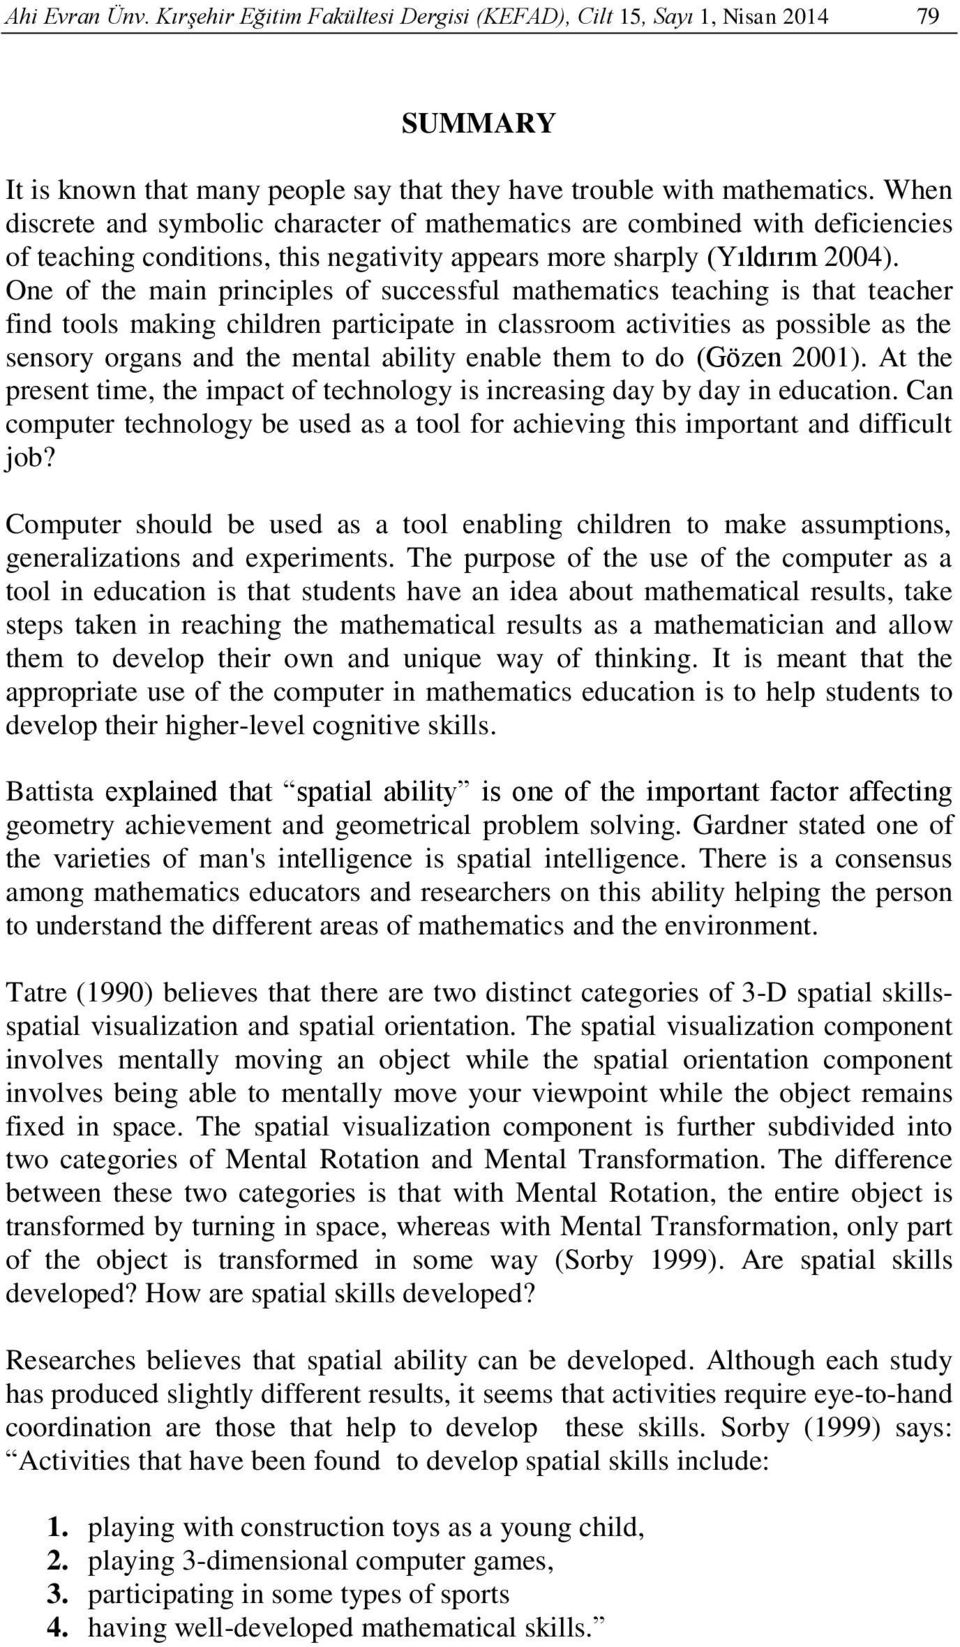 One of the main principles of successful mathematics teaching is that teacher find tools making children participate in classroom activities as possible as the sensory organs and the mental ability